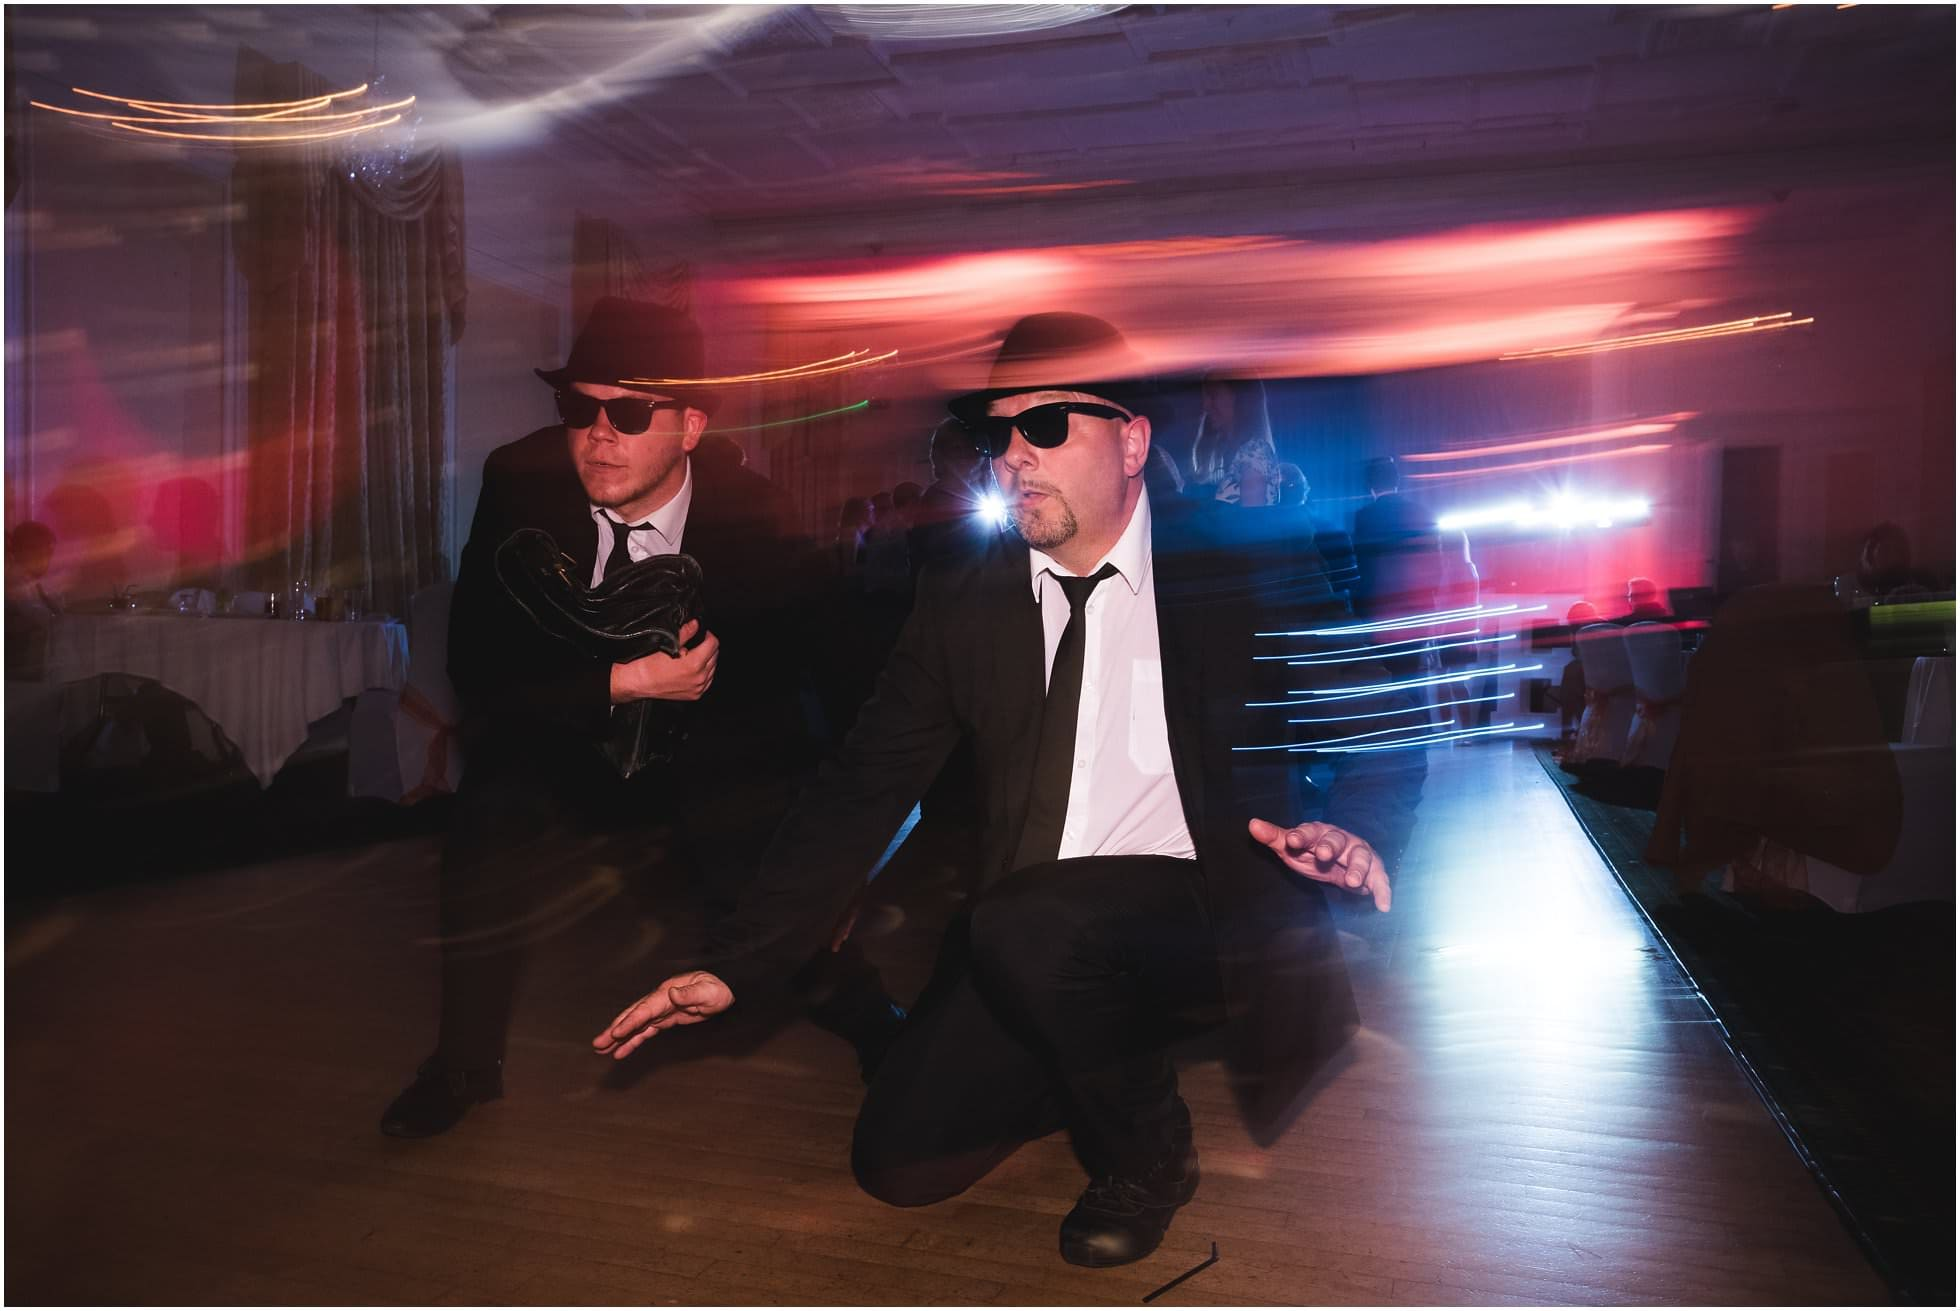 The Blues Brothers sneaking out of this Harrogate Wedding